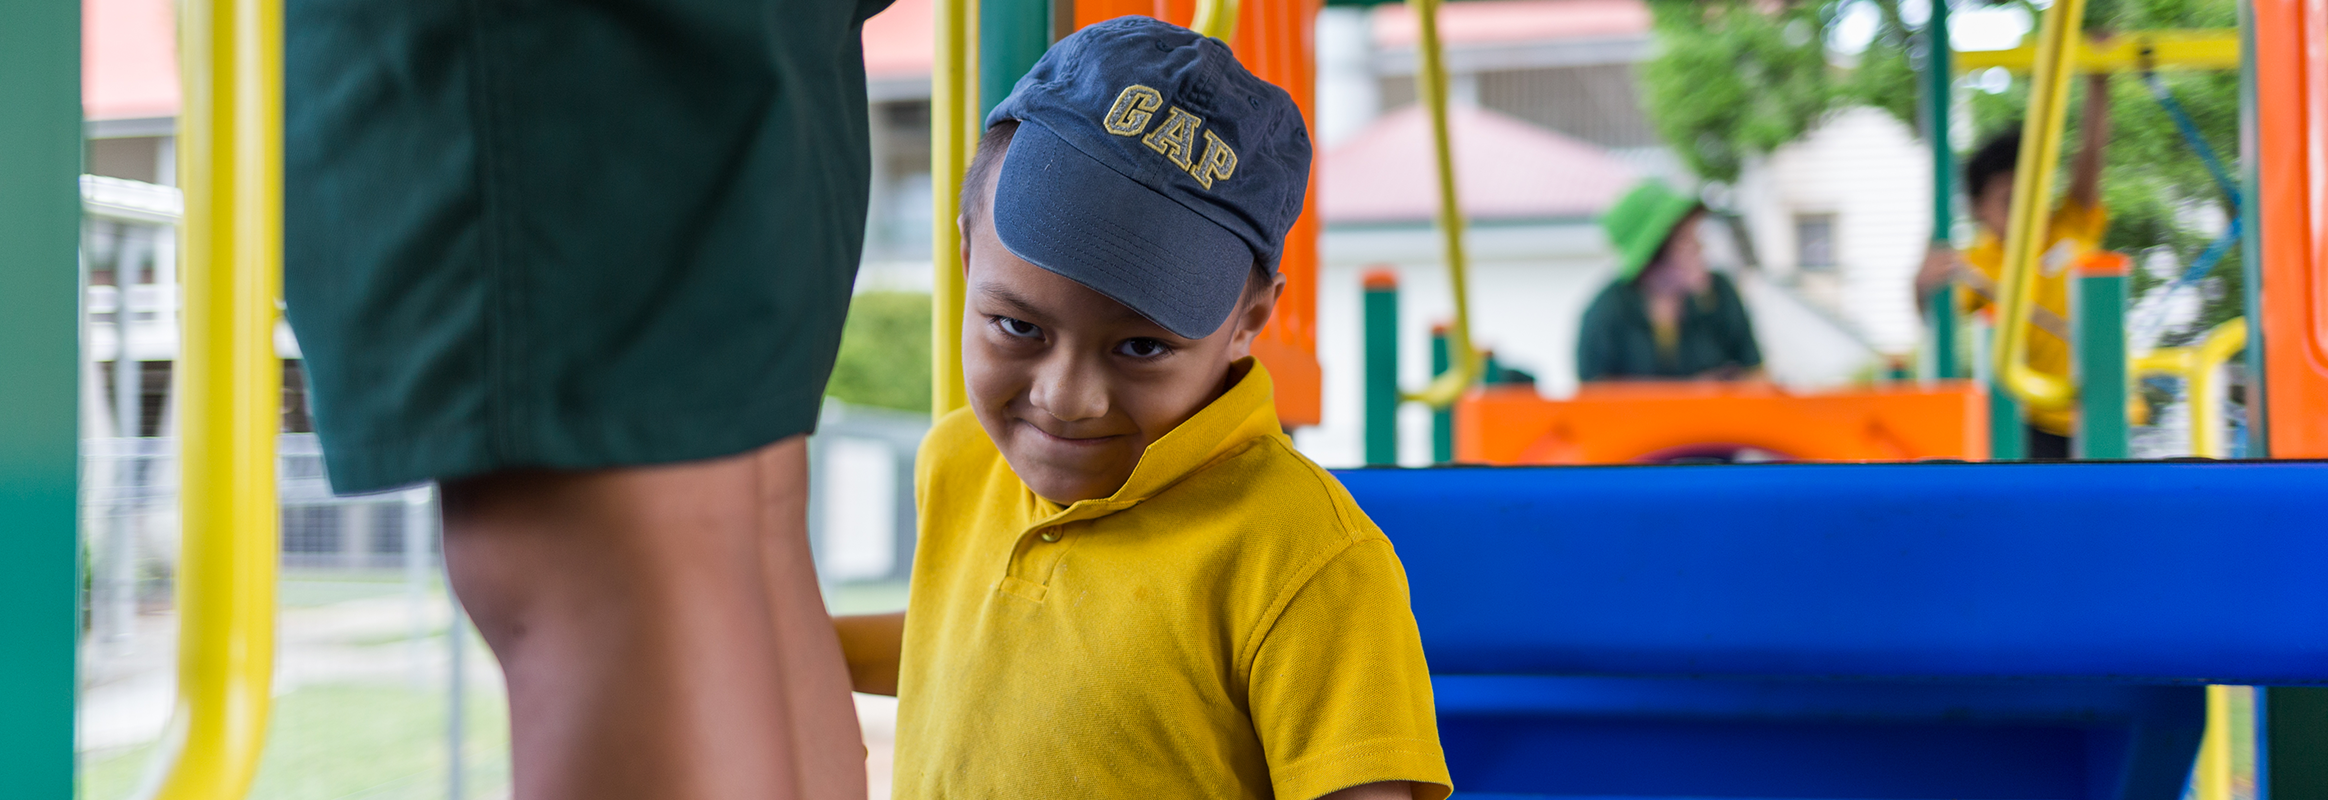 Monty, a young Samoan boy on a playground, smiling at the camera